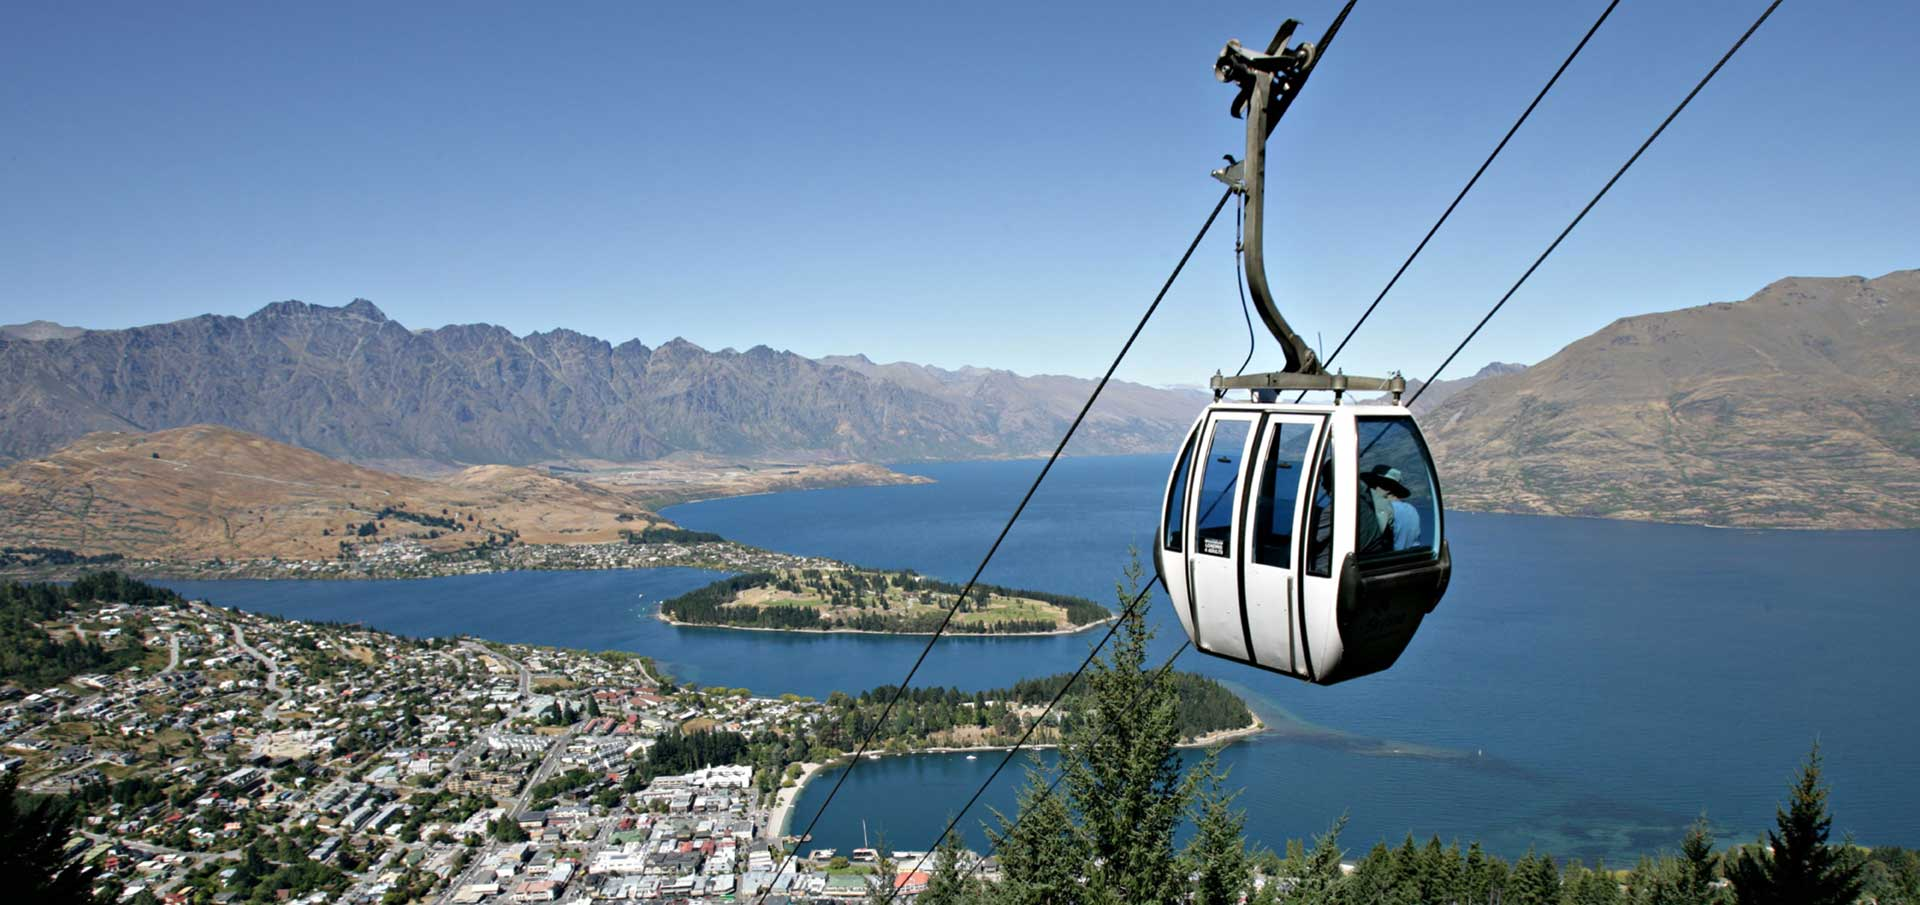 Gondola | Professional Education Programs Abroad